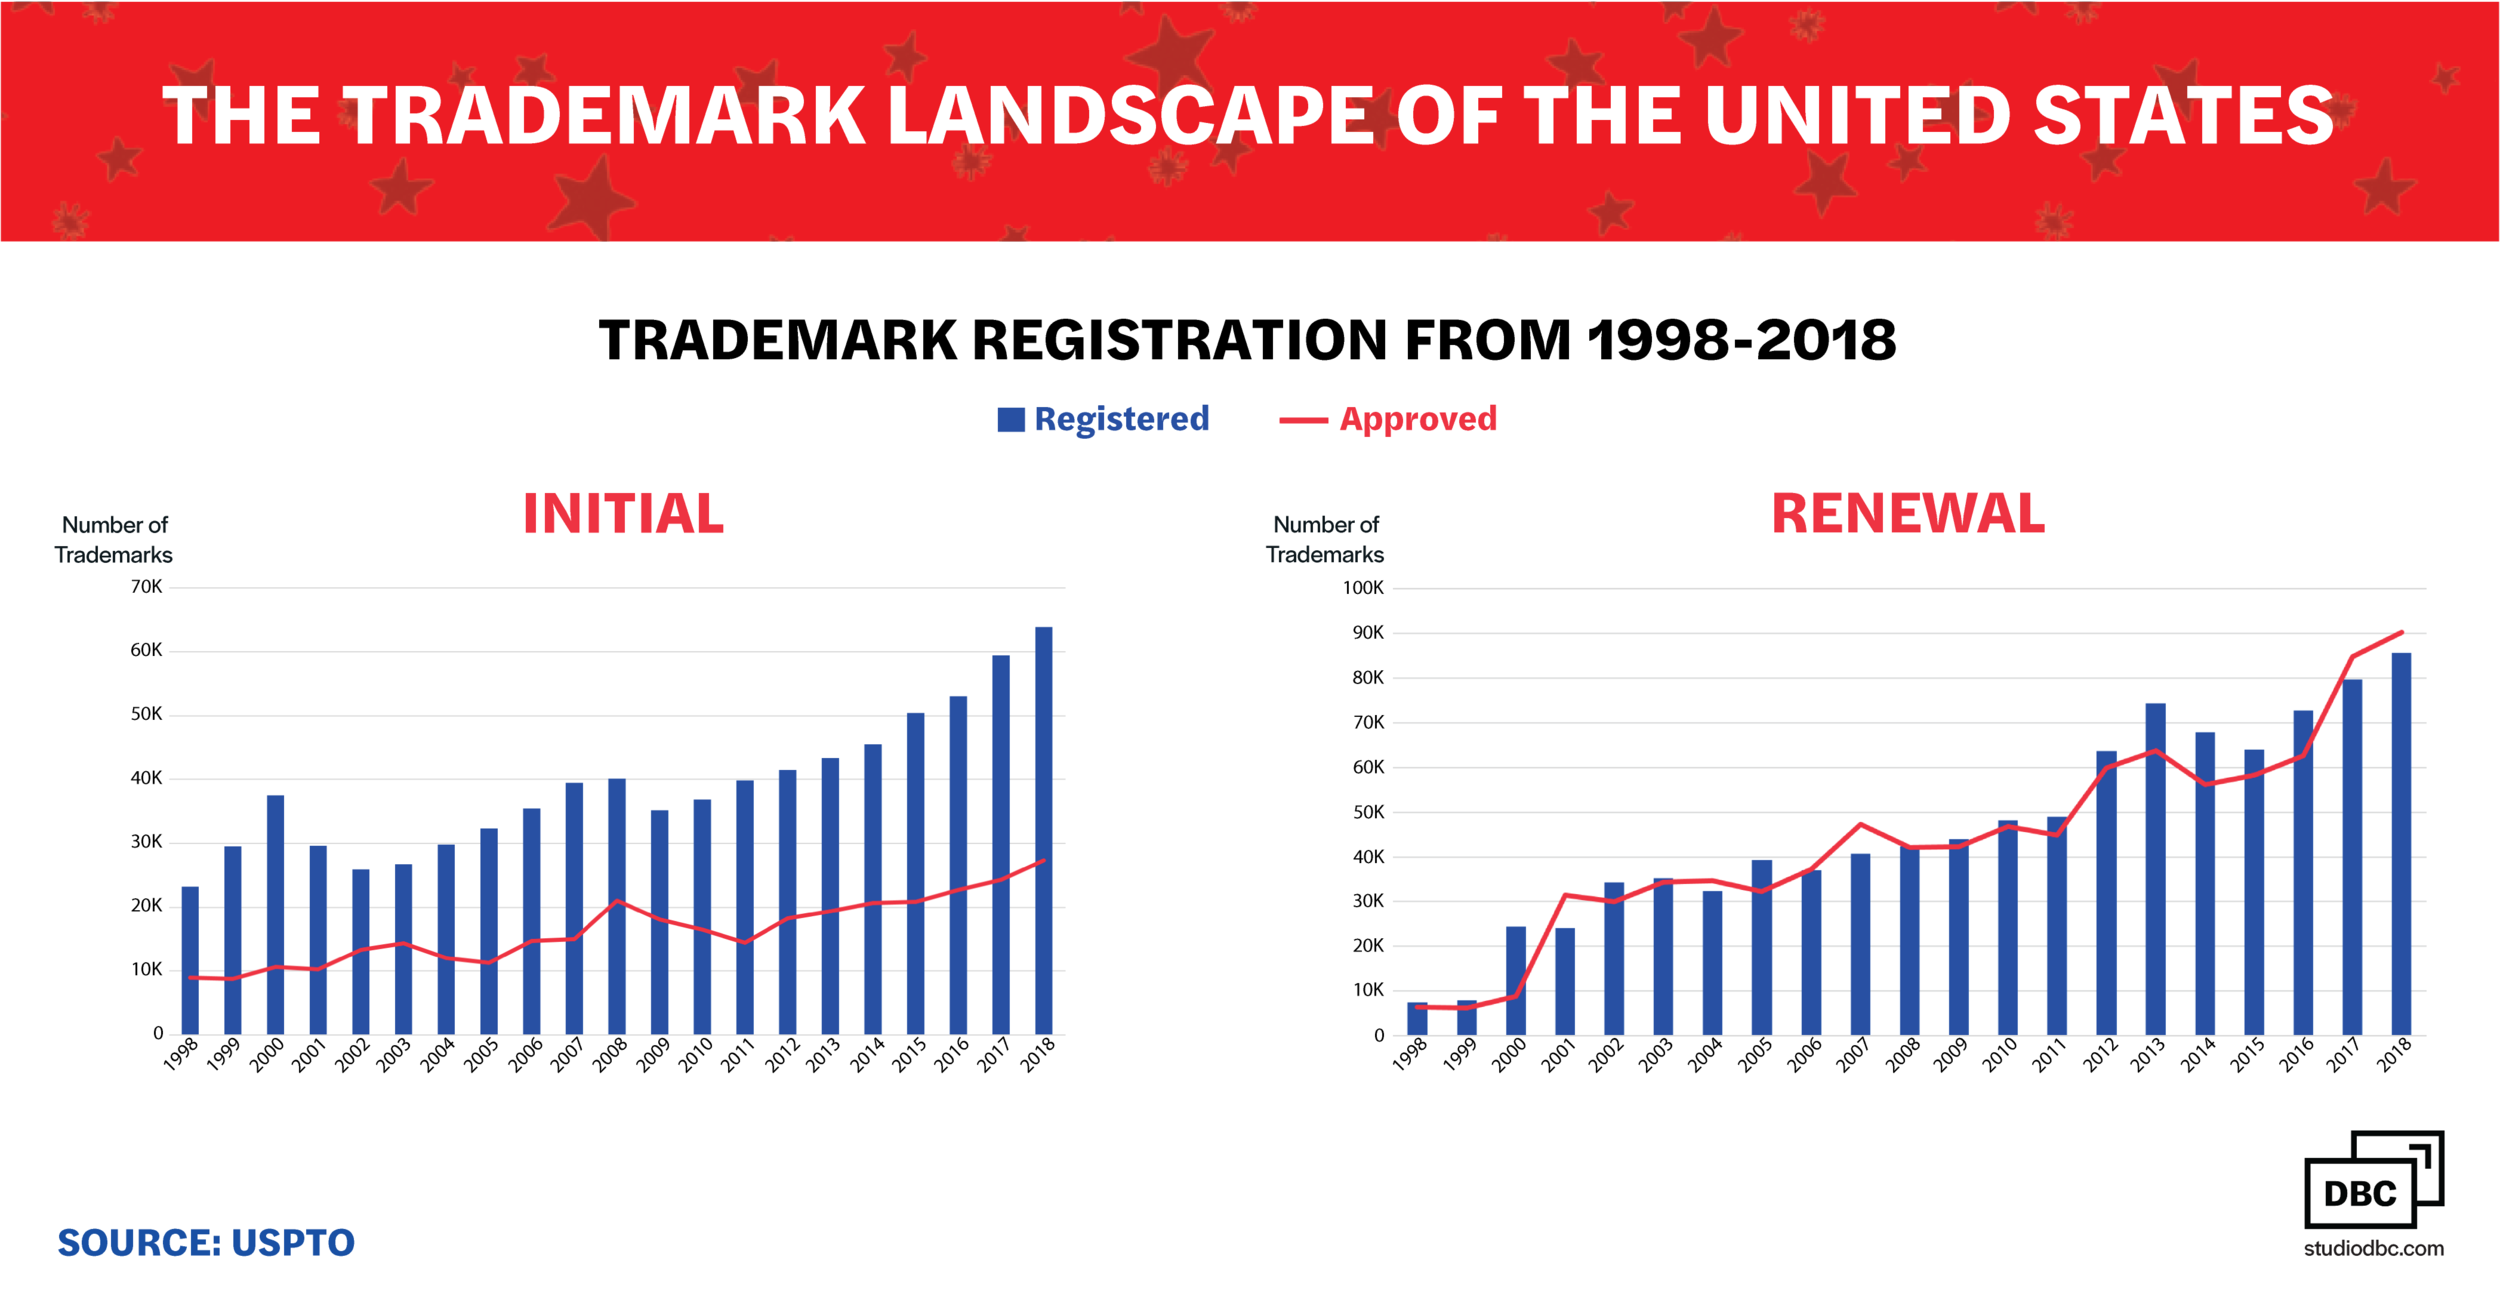 The trademark landscape of the united states